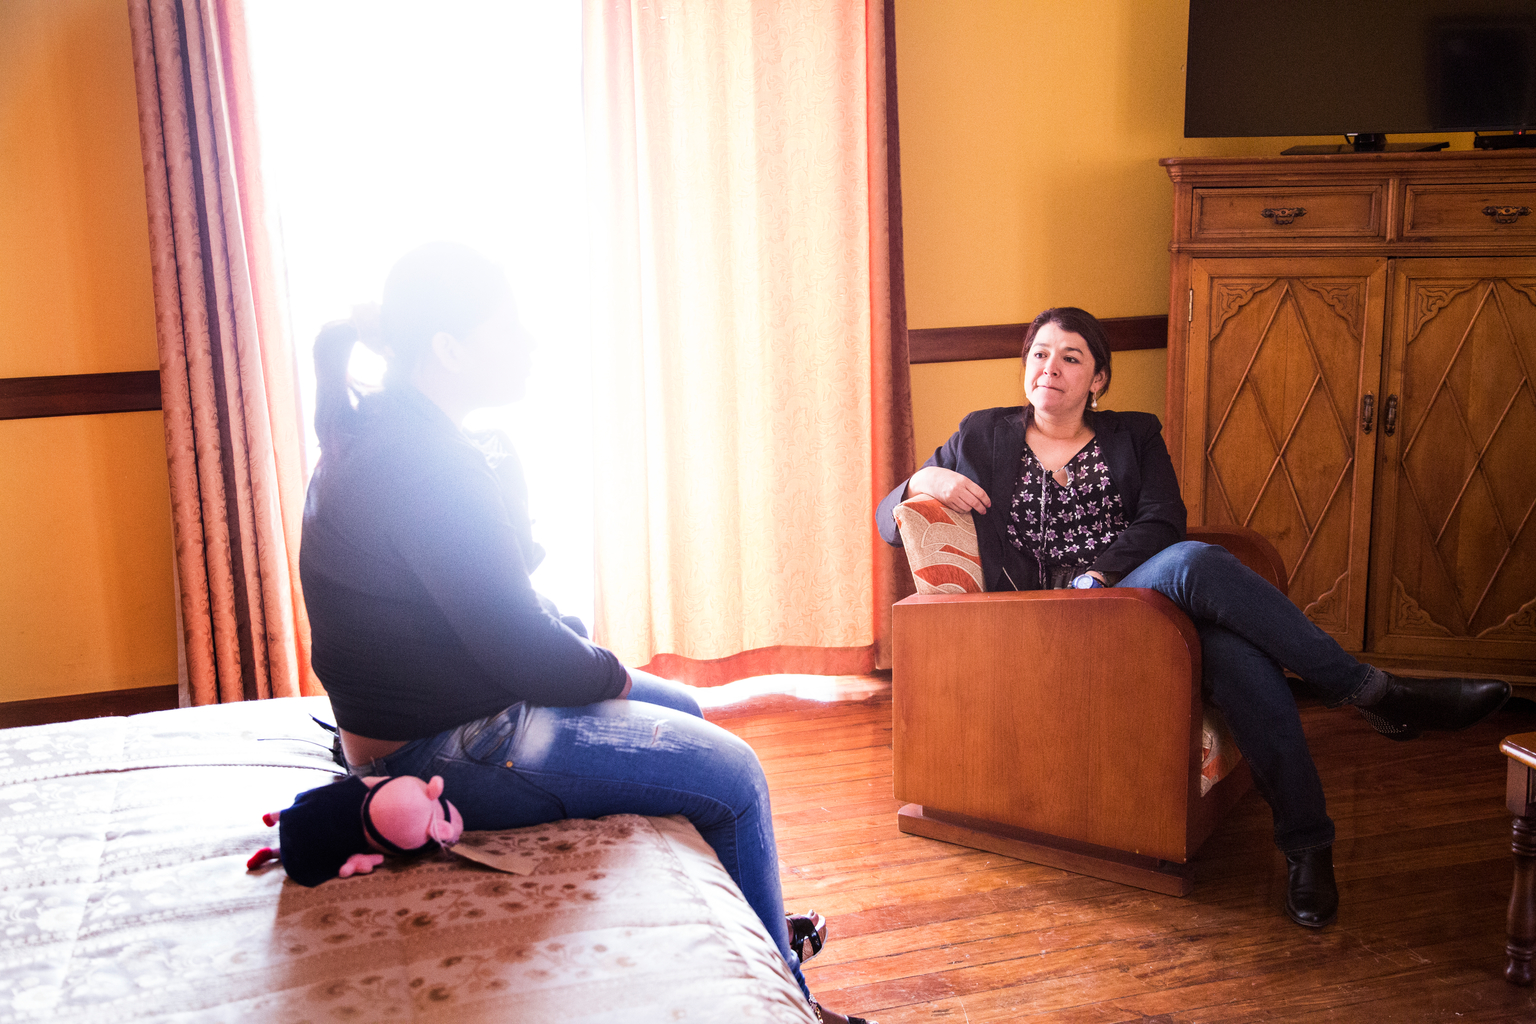 Two women sit in a room, one's face is blurred.